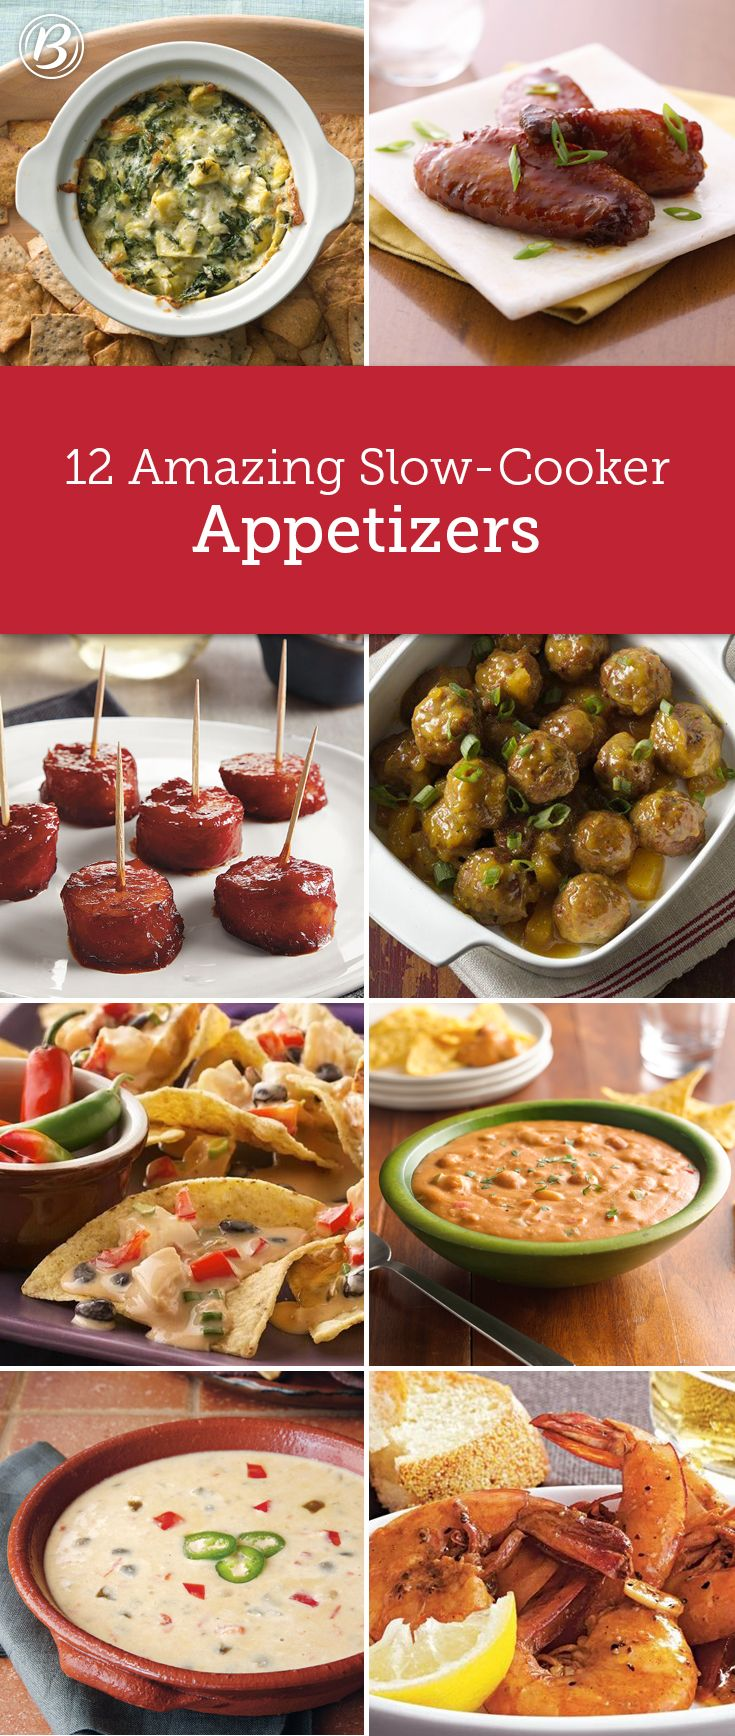 These 12 appetizers aren't only delicious, they're made extra-easy with help from our favorite kitchen helper—the slow cooker!